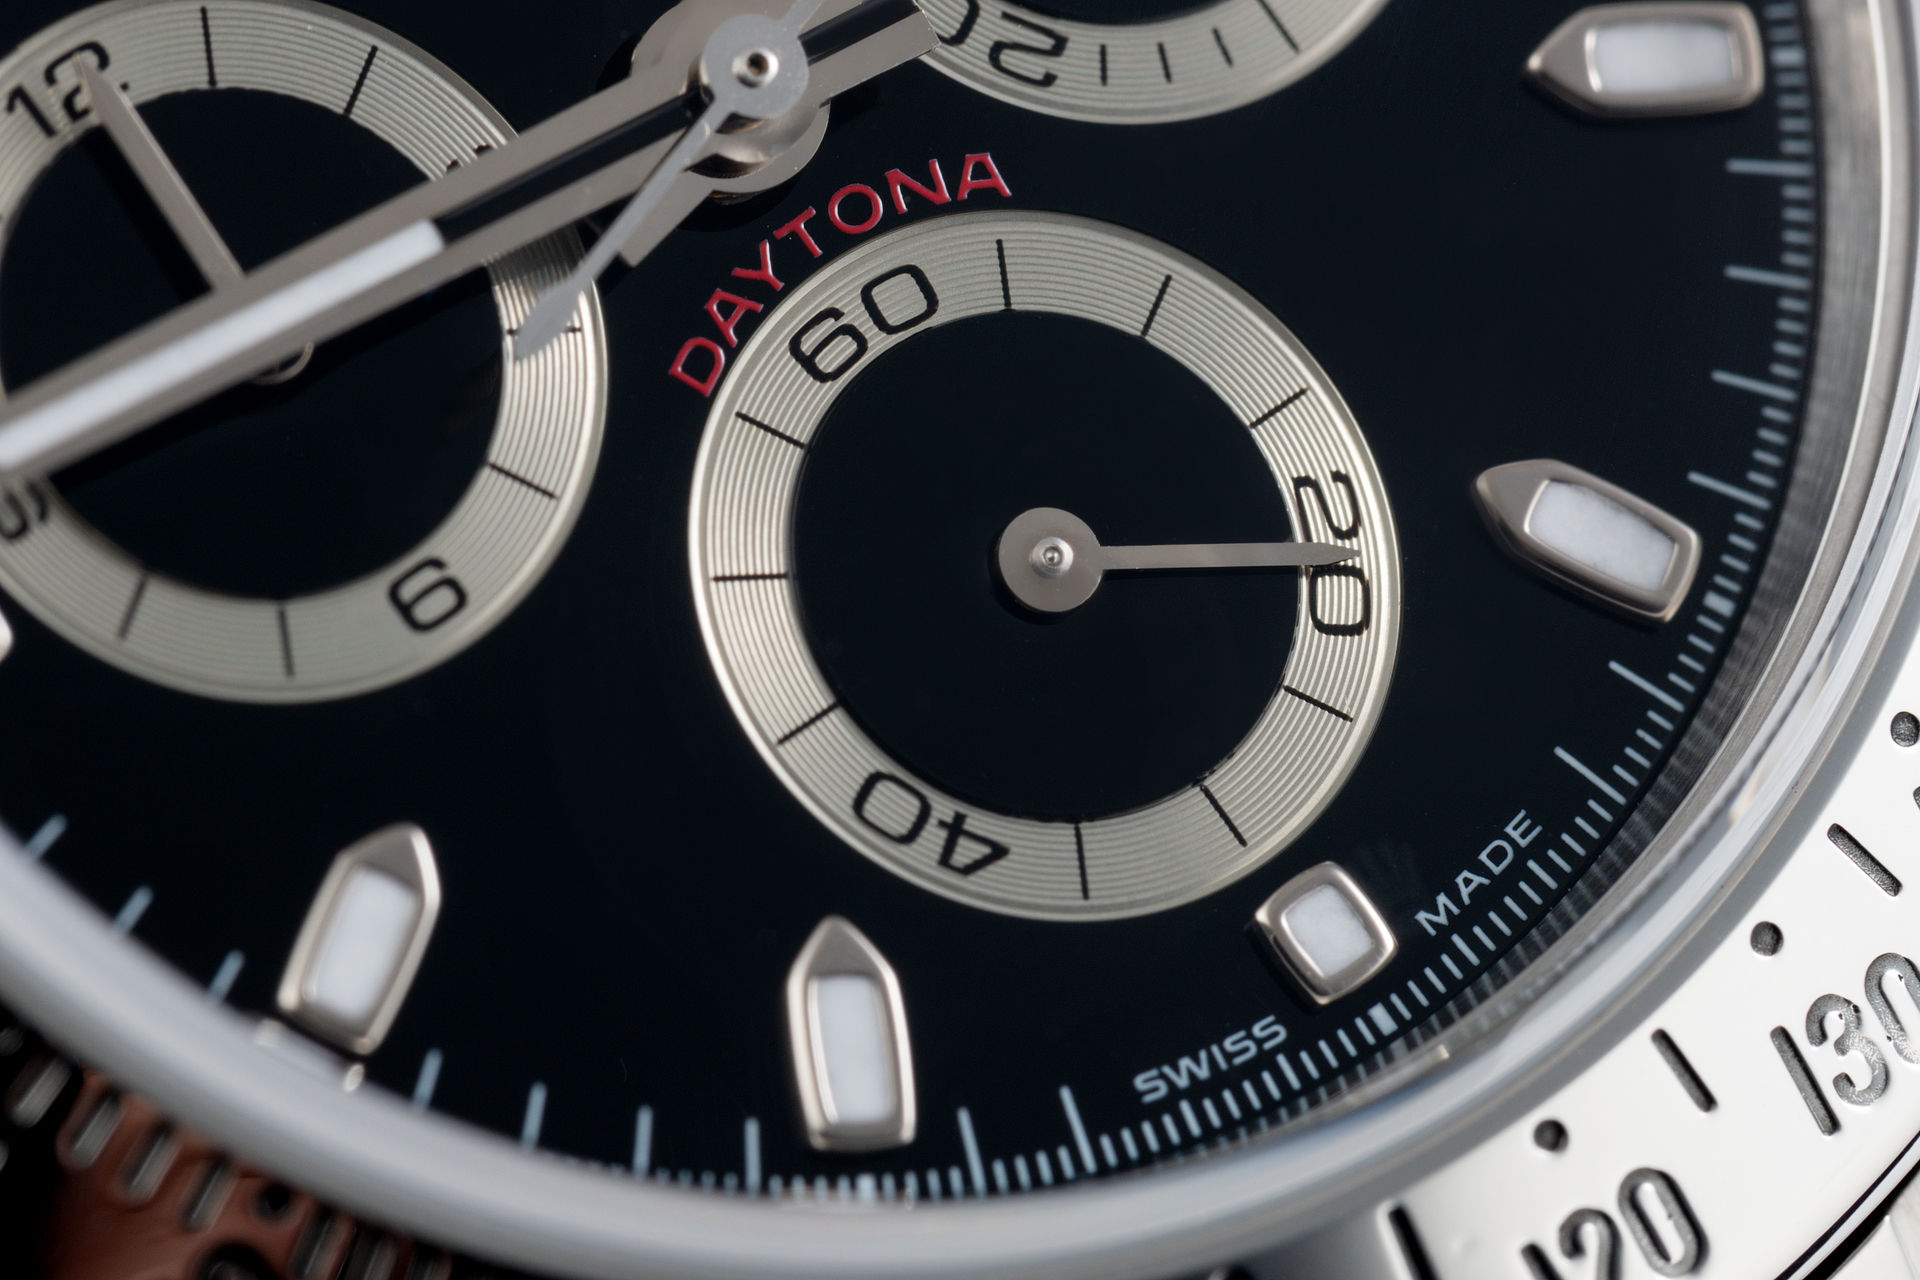 ref 116520 | In-house Calibre 4130 | Rolex Cosmograph Daytona